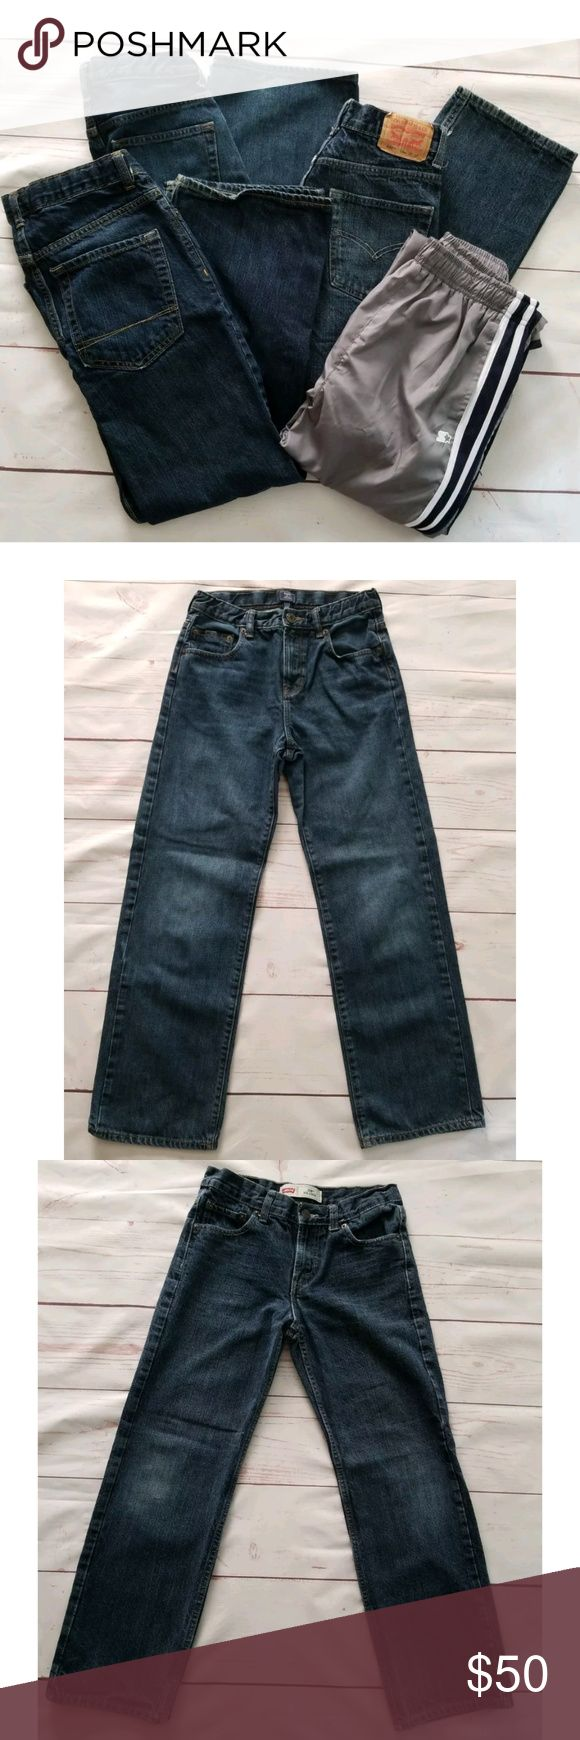 4 Pc Lot Boys Sz 14 Jeans & Athletic Pants 4 Piece Lot, Gap Levi's & Old Navy Boys Jeans & Starter Active Athletic Pants  Gap Loose Fit Jeans, Dark Wash, Adjustable Waist, Straight Leg, 28 Inch Waist, 28 Inch Inseam, 100% Cotton, Size 14 Levis 550 Relaxed Jeans, Dark Wash, Straight Leg, 27 Inch Waist, 27 Inch Inseam, 100% Cotton, Size 14 Old Navy Jeans, Dark Wash, Boot Cut, 28 inch Waist, 27.5 Inch Inseam, 100% Cotton, Size 14 Starter Active Athletic Pants, Gray Black & White, Completely…